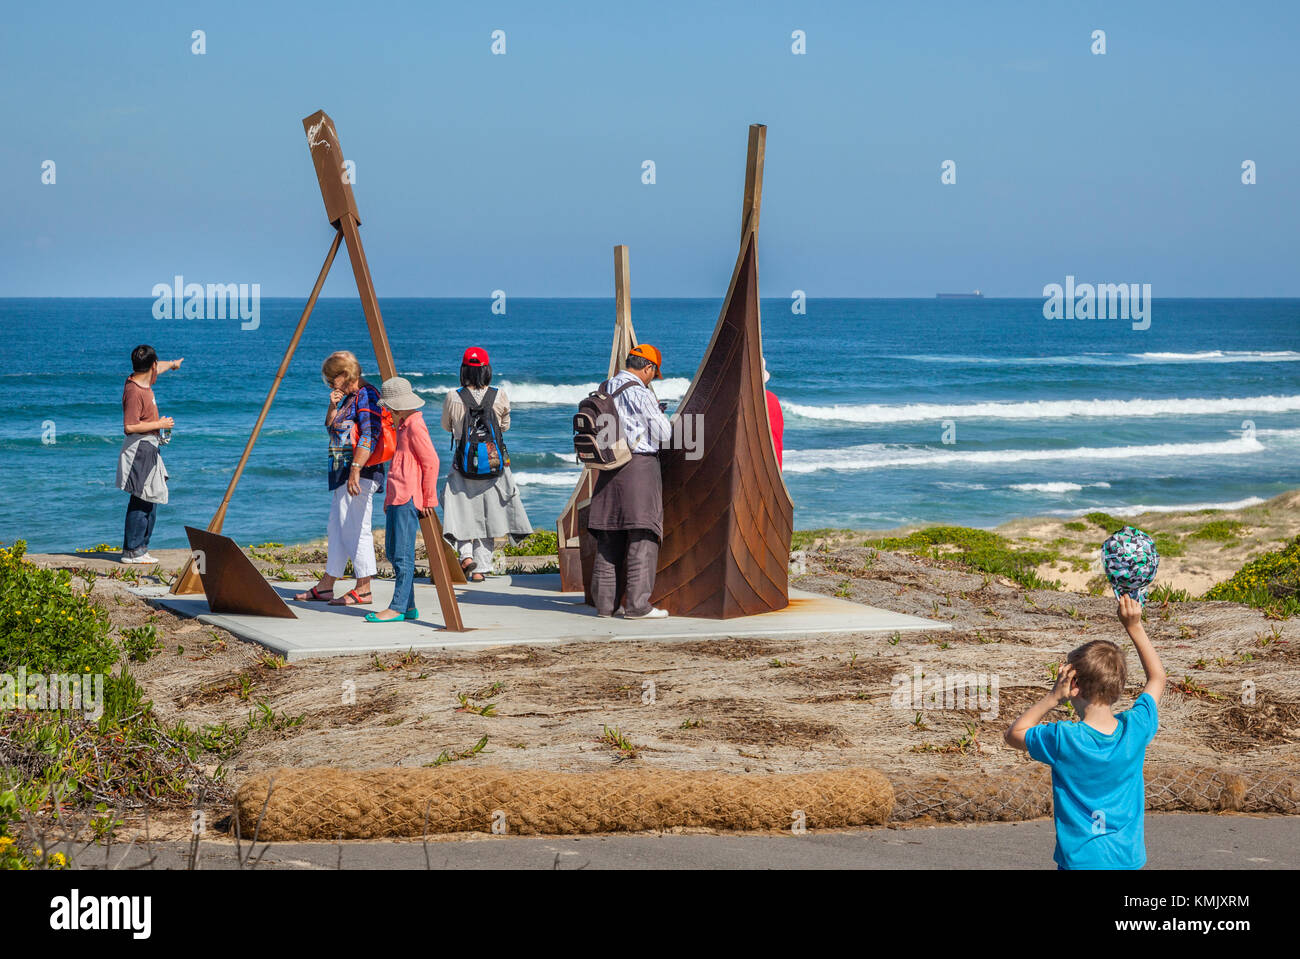 Australia, New South Wales, Newcastle, Nobbys Head, sculpture commemorating the Newcastle Lifeboat Service and Rocket - Stock Image